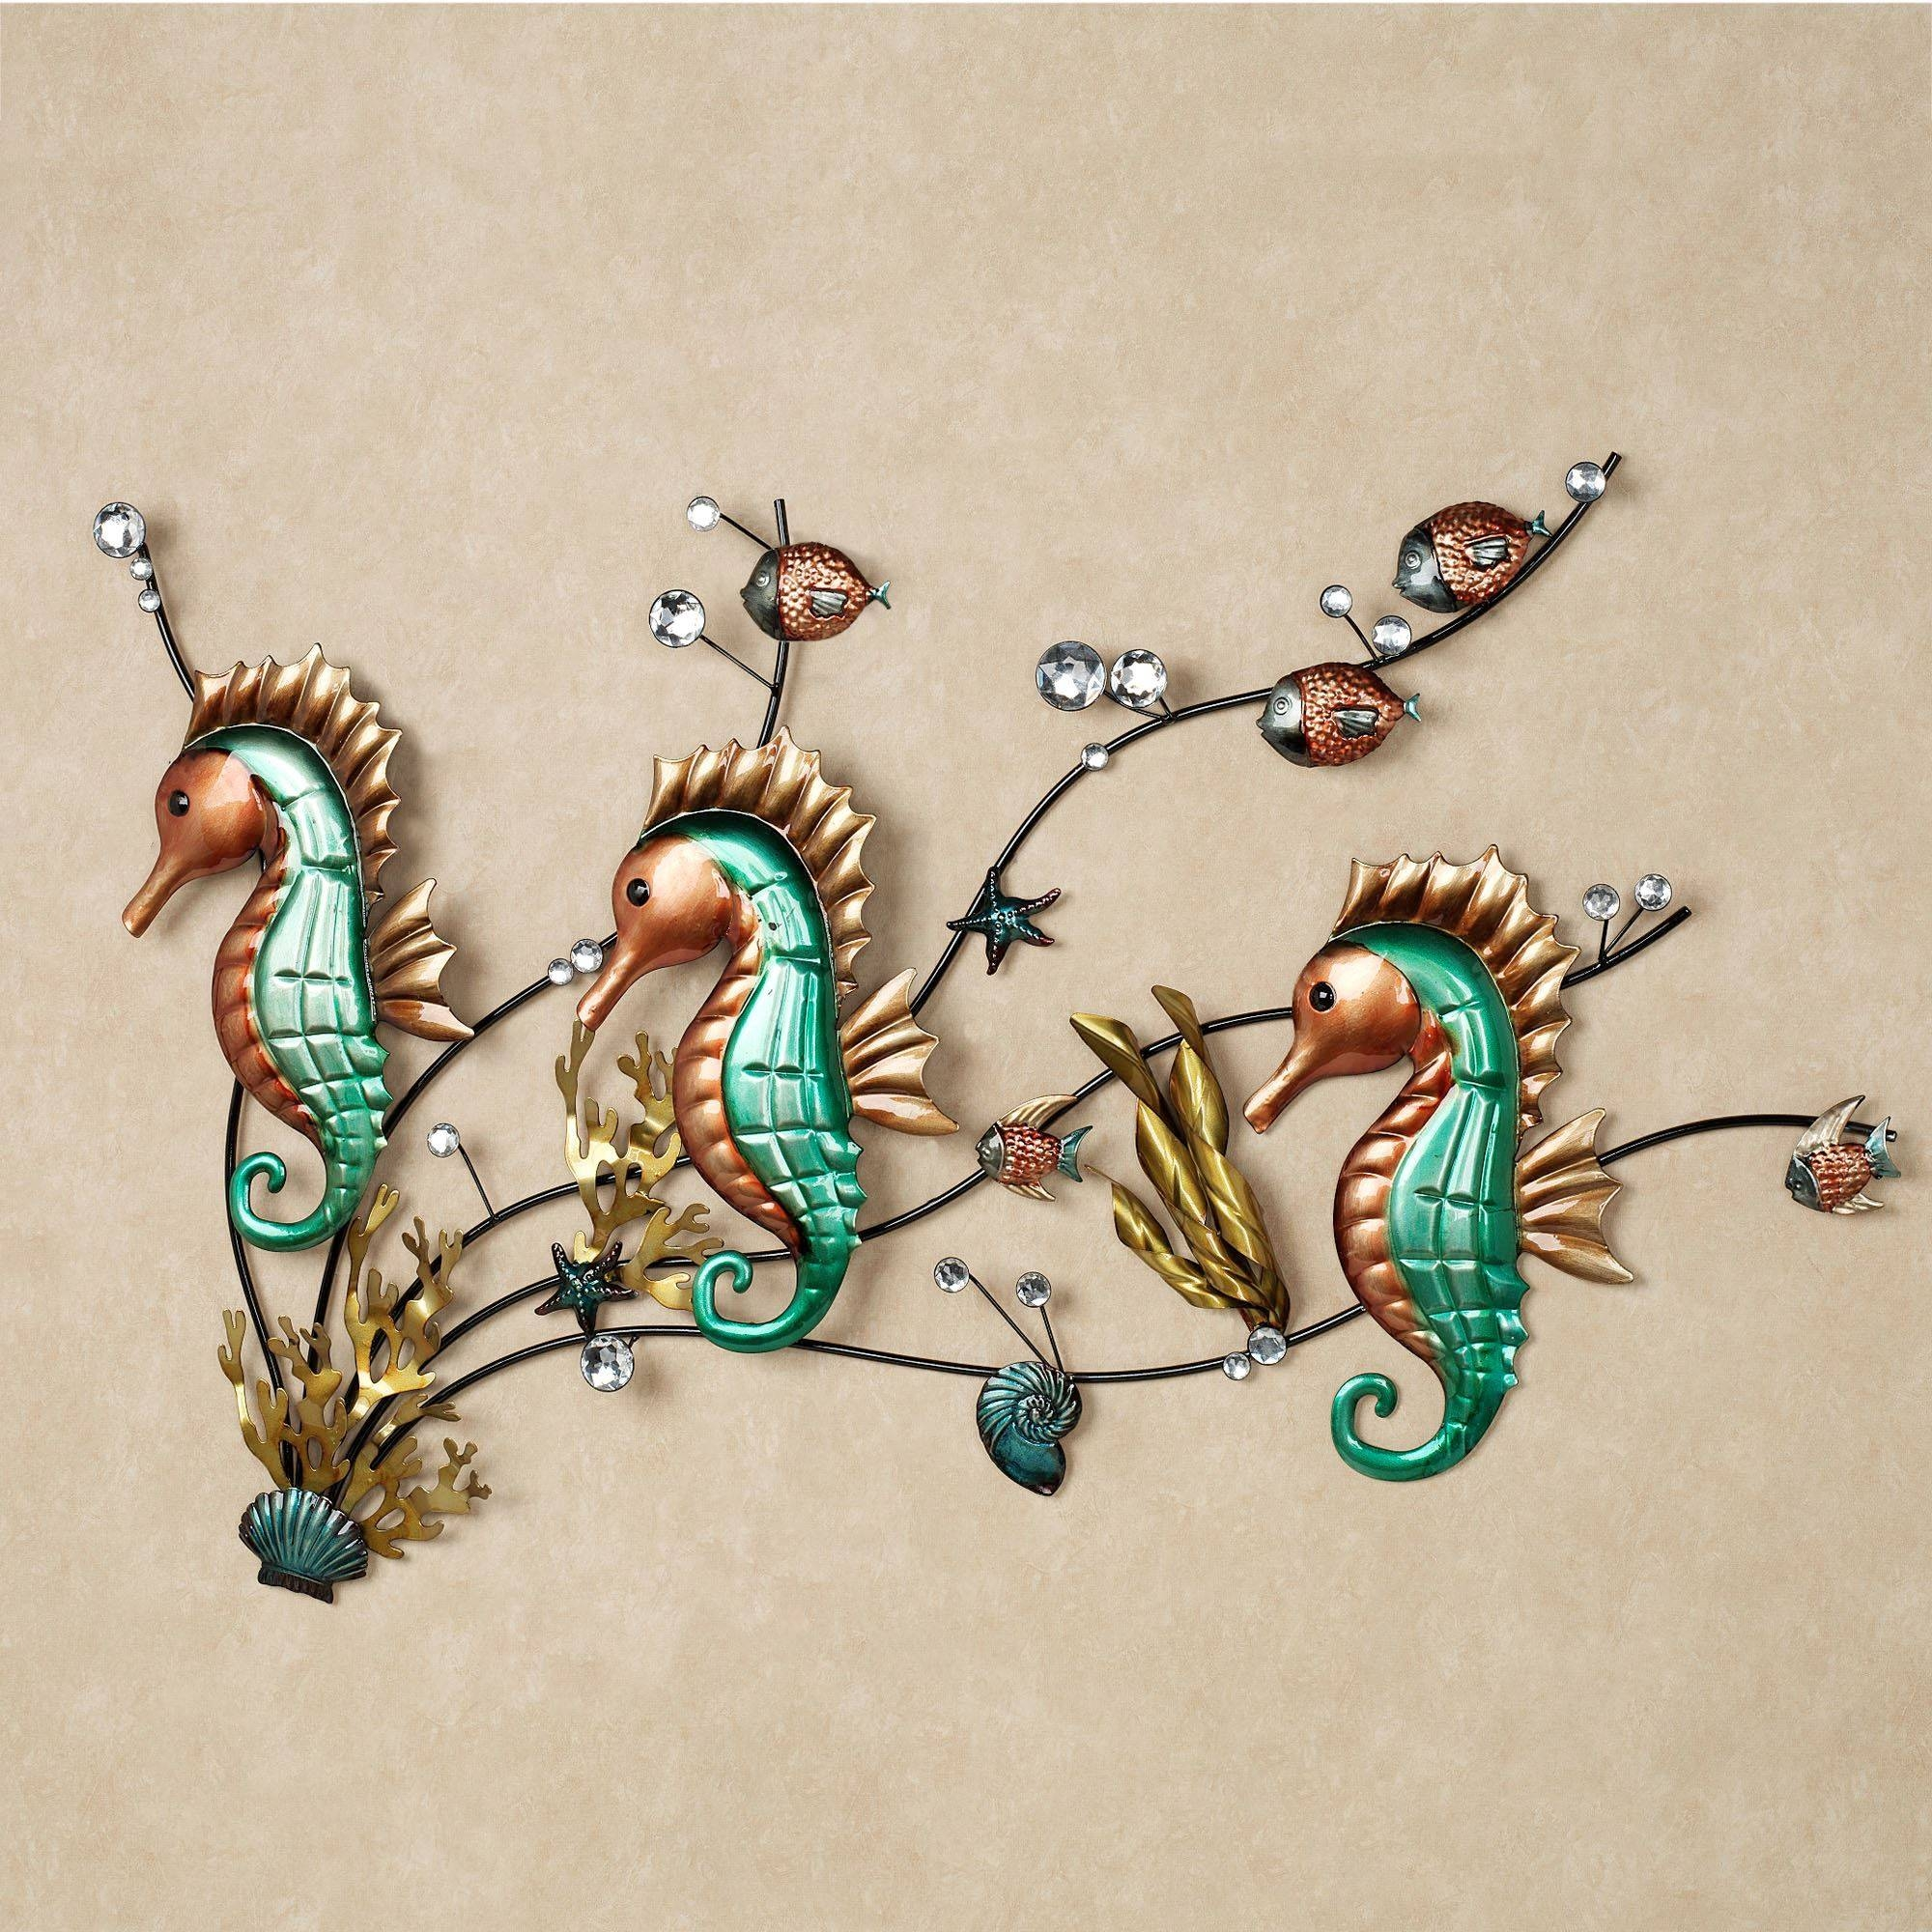 Functional Bedroom Furniture, Seahorse Metal Wall Plaques Accents Regarding 2017 Seahorse Metal Wall Art (View 3 of 20)